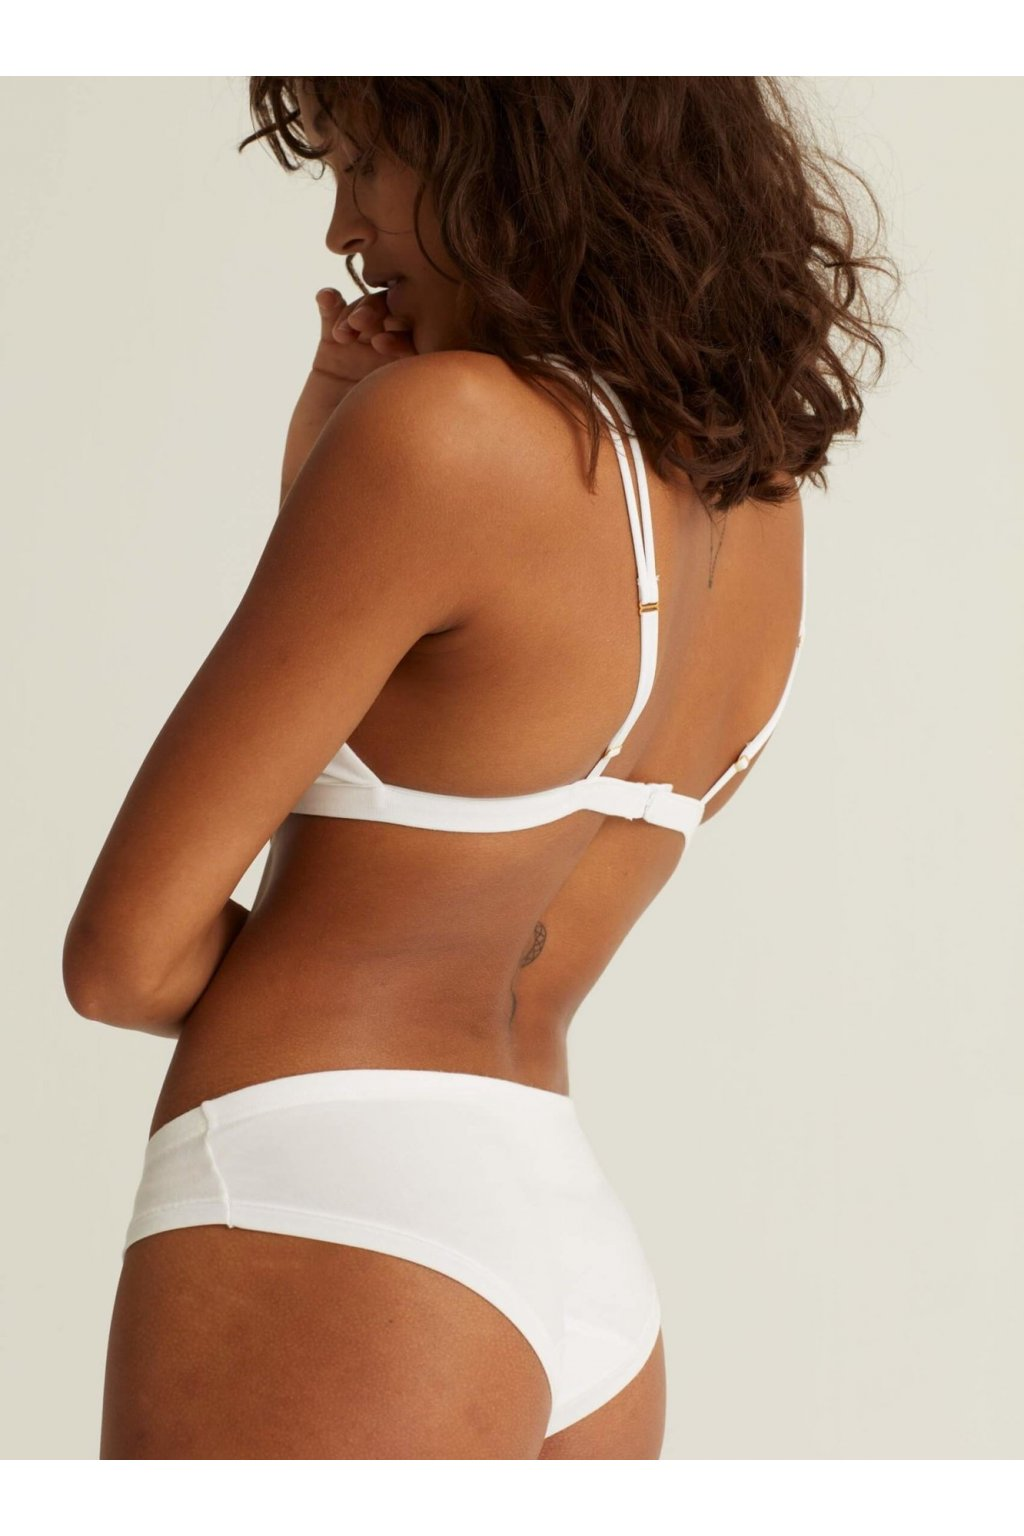 low rise undies hipster base white 759746 1800x1800